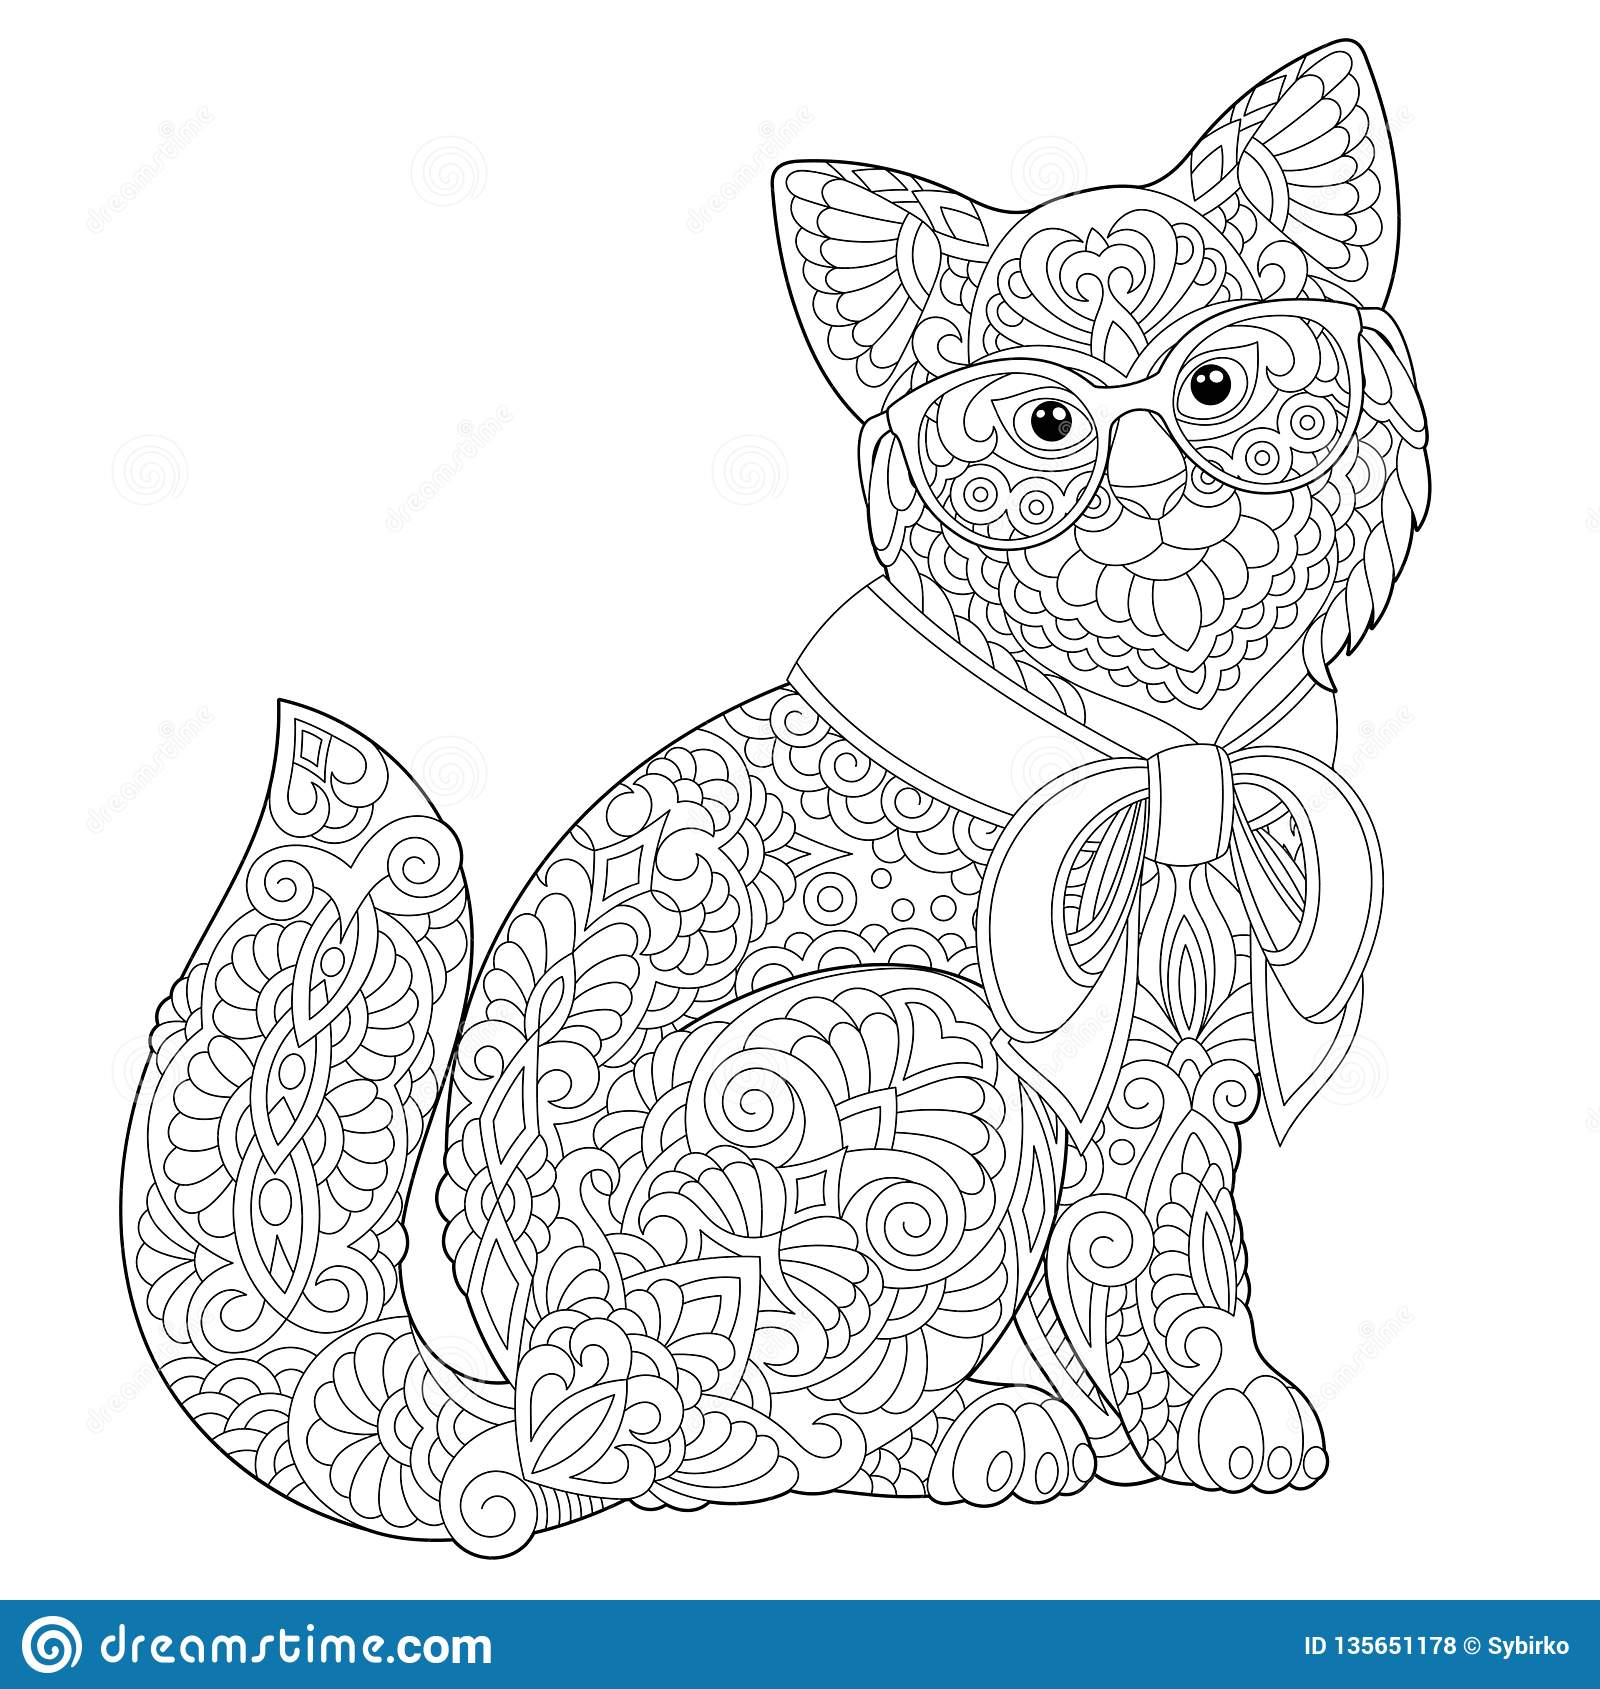 Zentangle Cat Coloring Page Stock Vector - Illustration of black ...